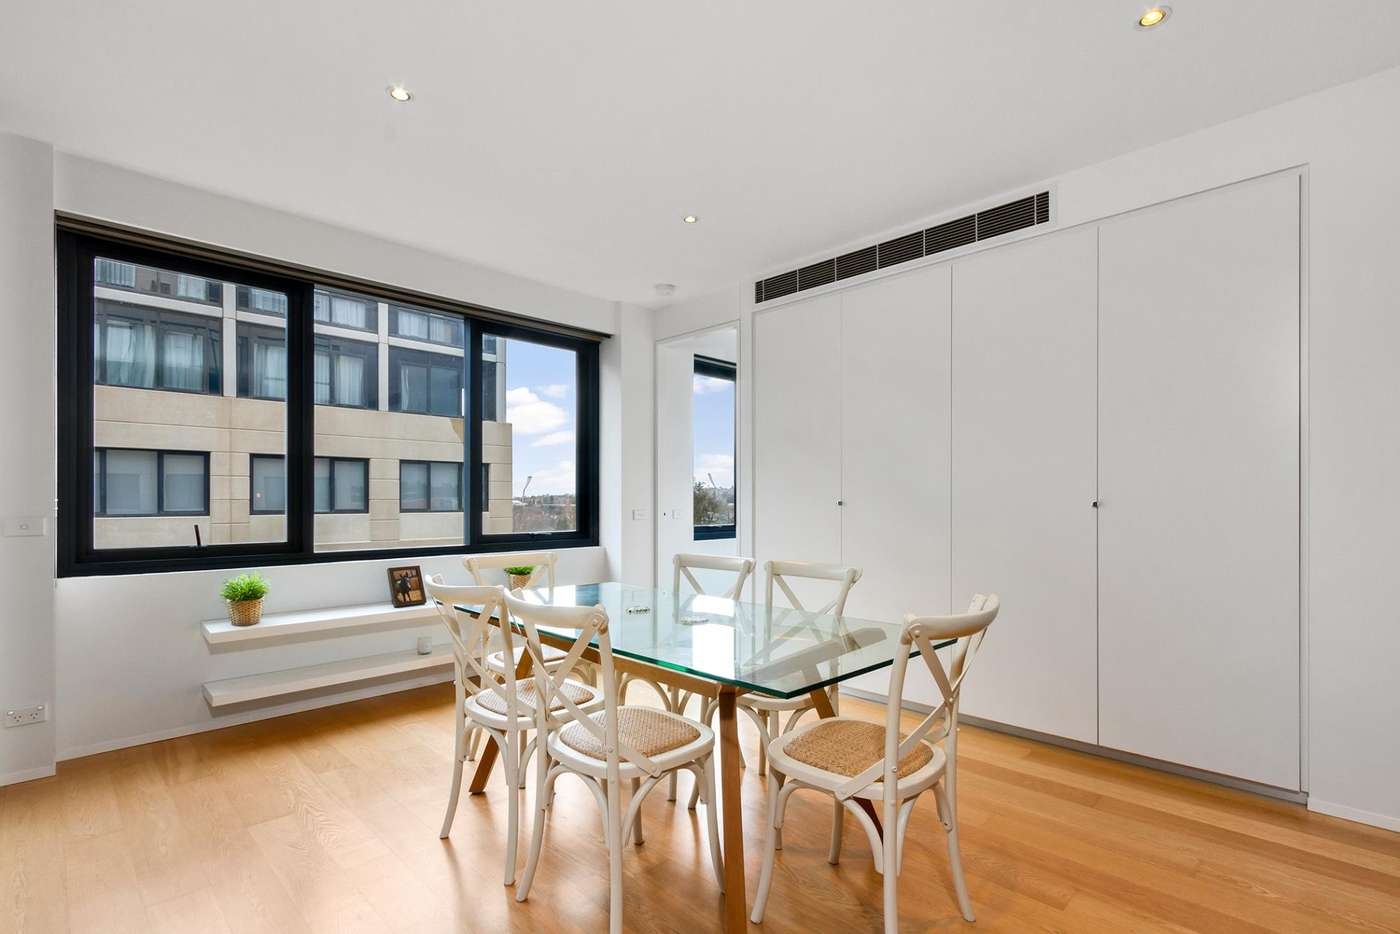 Fifth view of Homely apartment listing, 16/11 Sydney Avenue, Barton ACT 2600